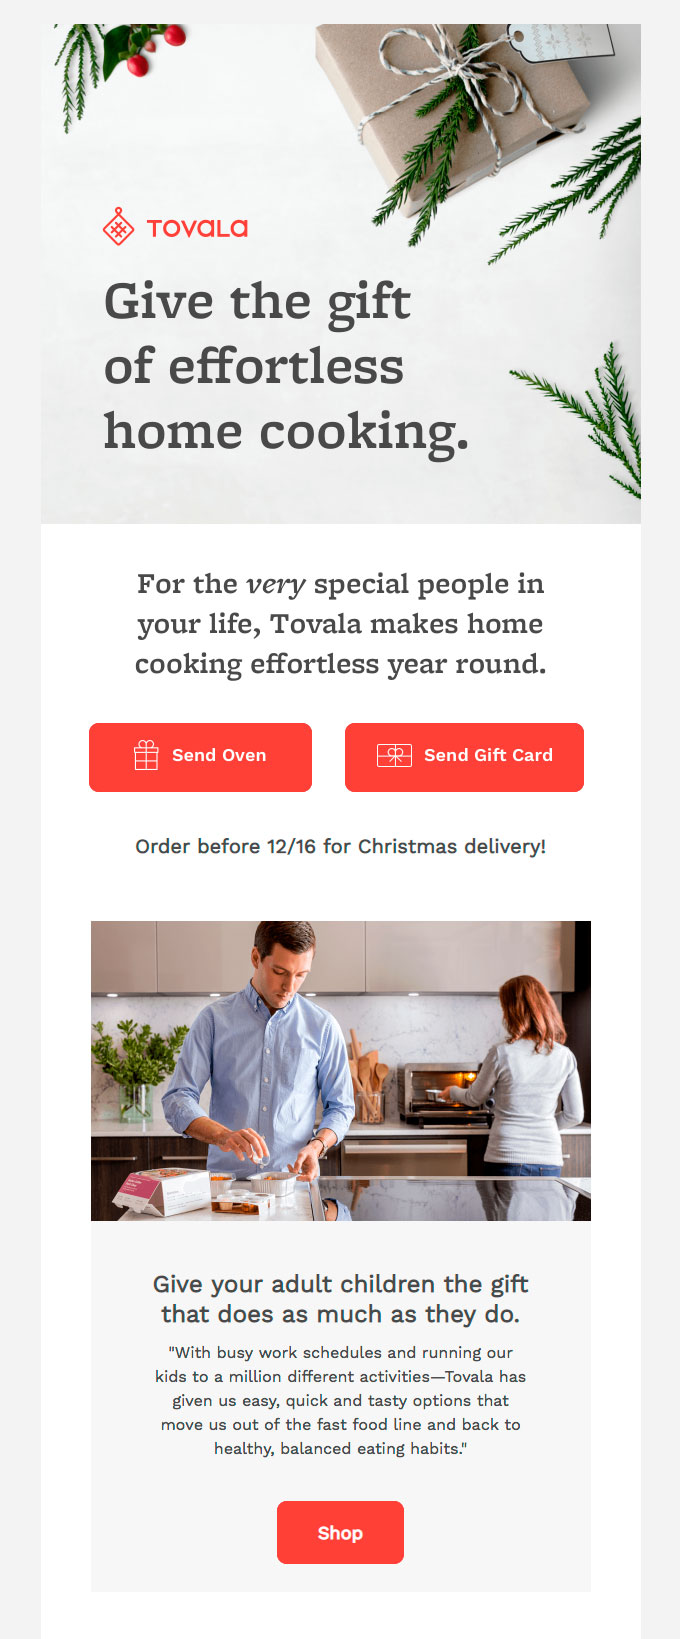 A screenshot of a holiday email newsletter campaign about gift giving.